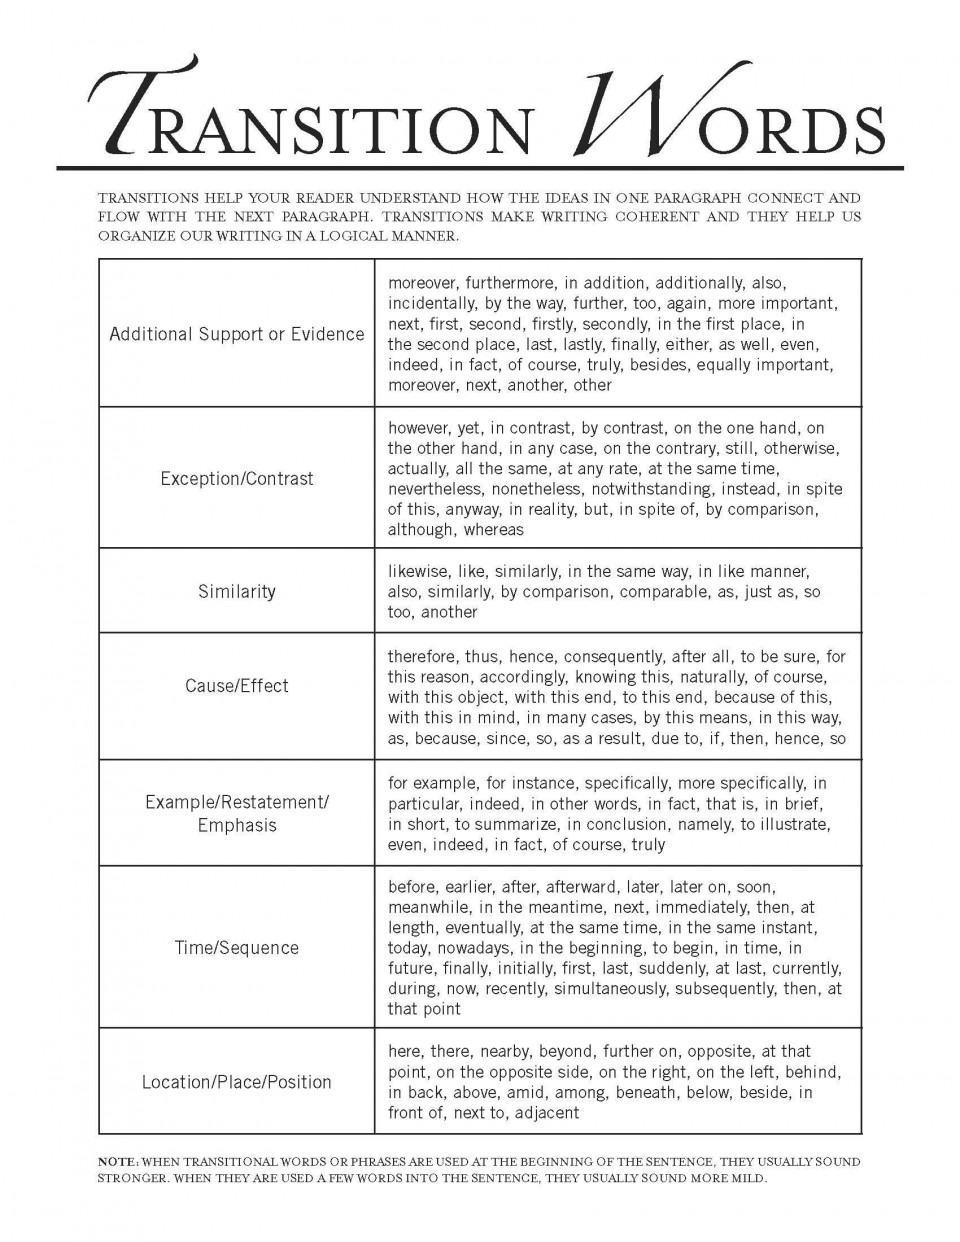 003 Transition Words For Essay Fascinating Essays Between Paragraphs Writing An Argumentative In Spanish 960